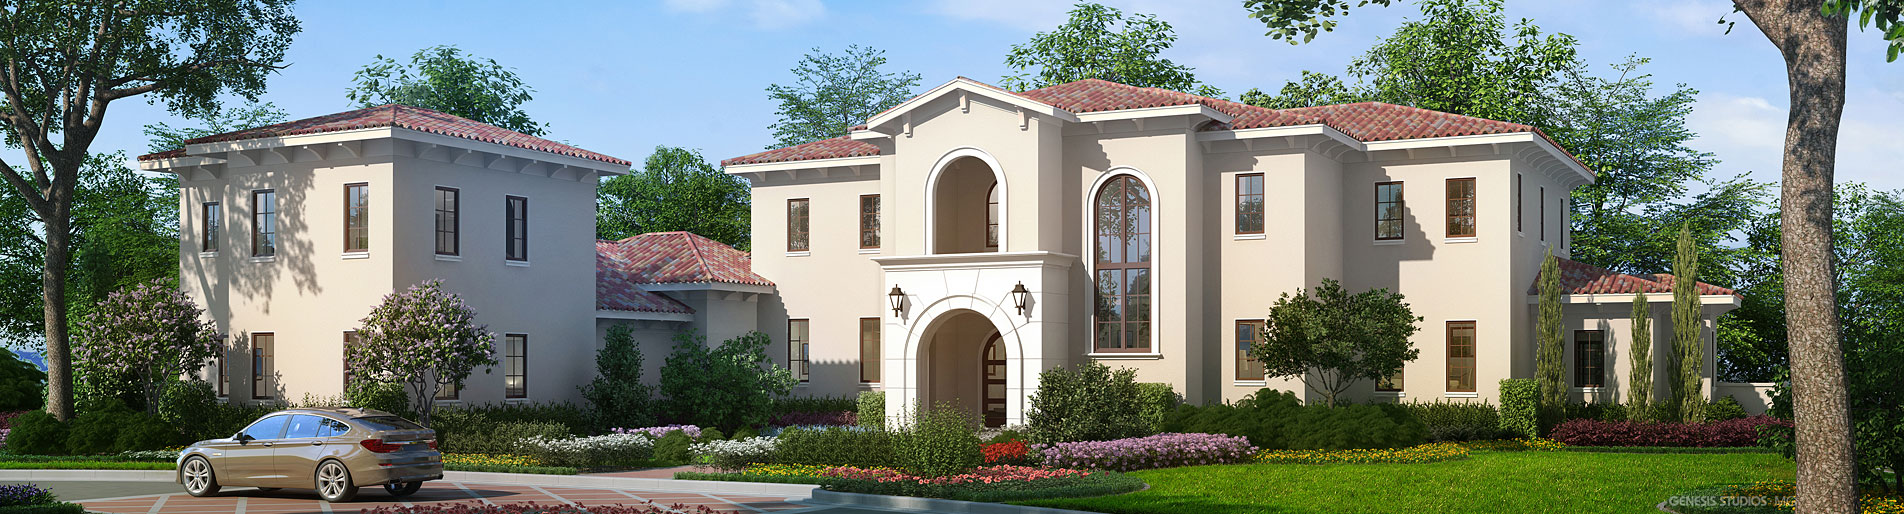 Digital Photorealistic Architectural Renderings of Lake Nona Lot 31 Single Familly Home for Cahil Homes